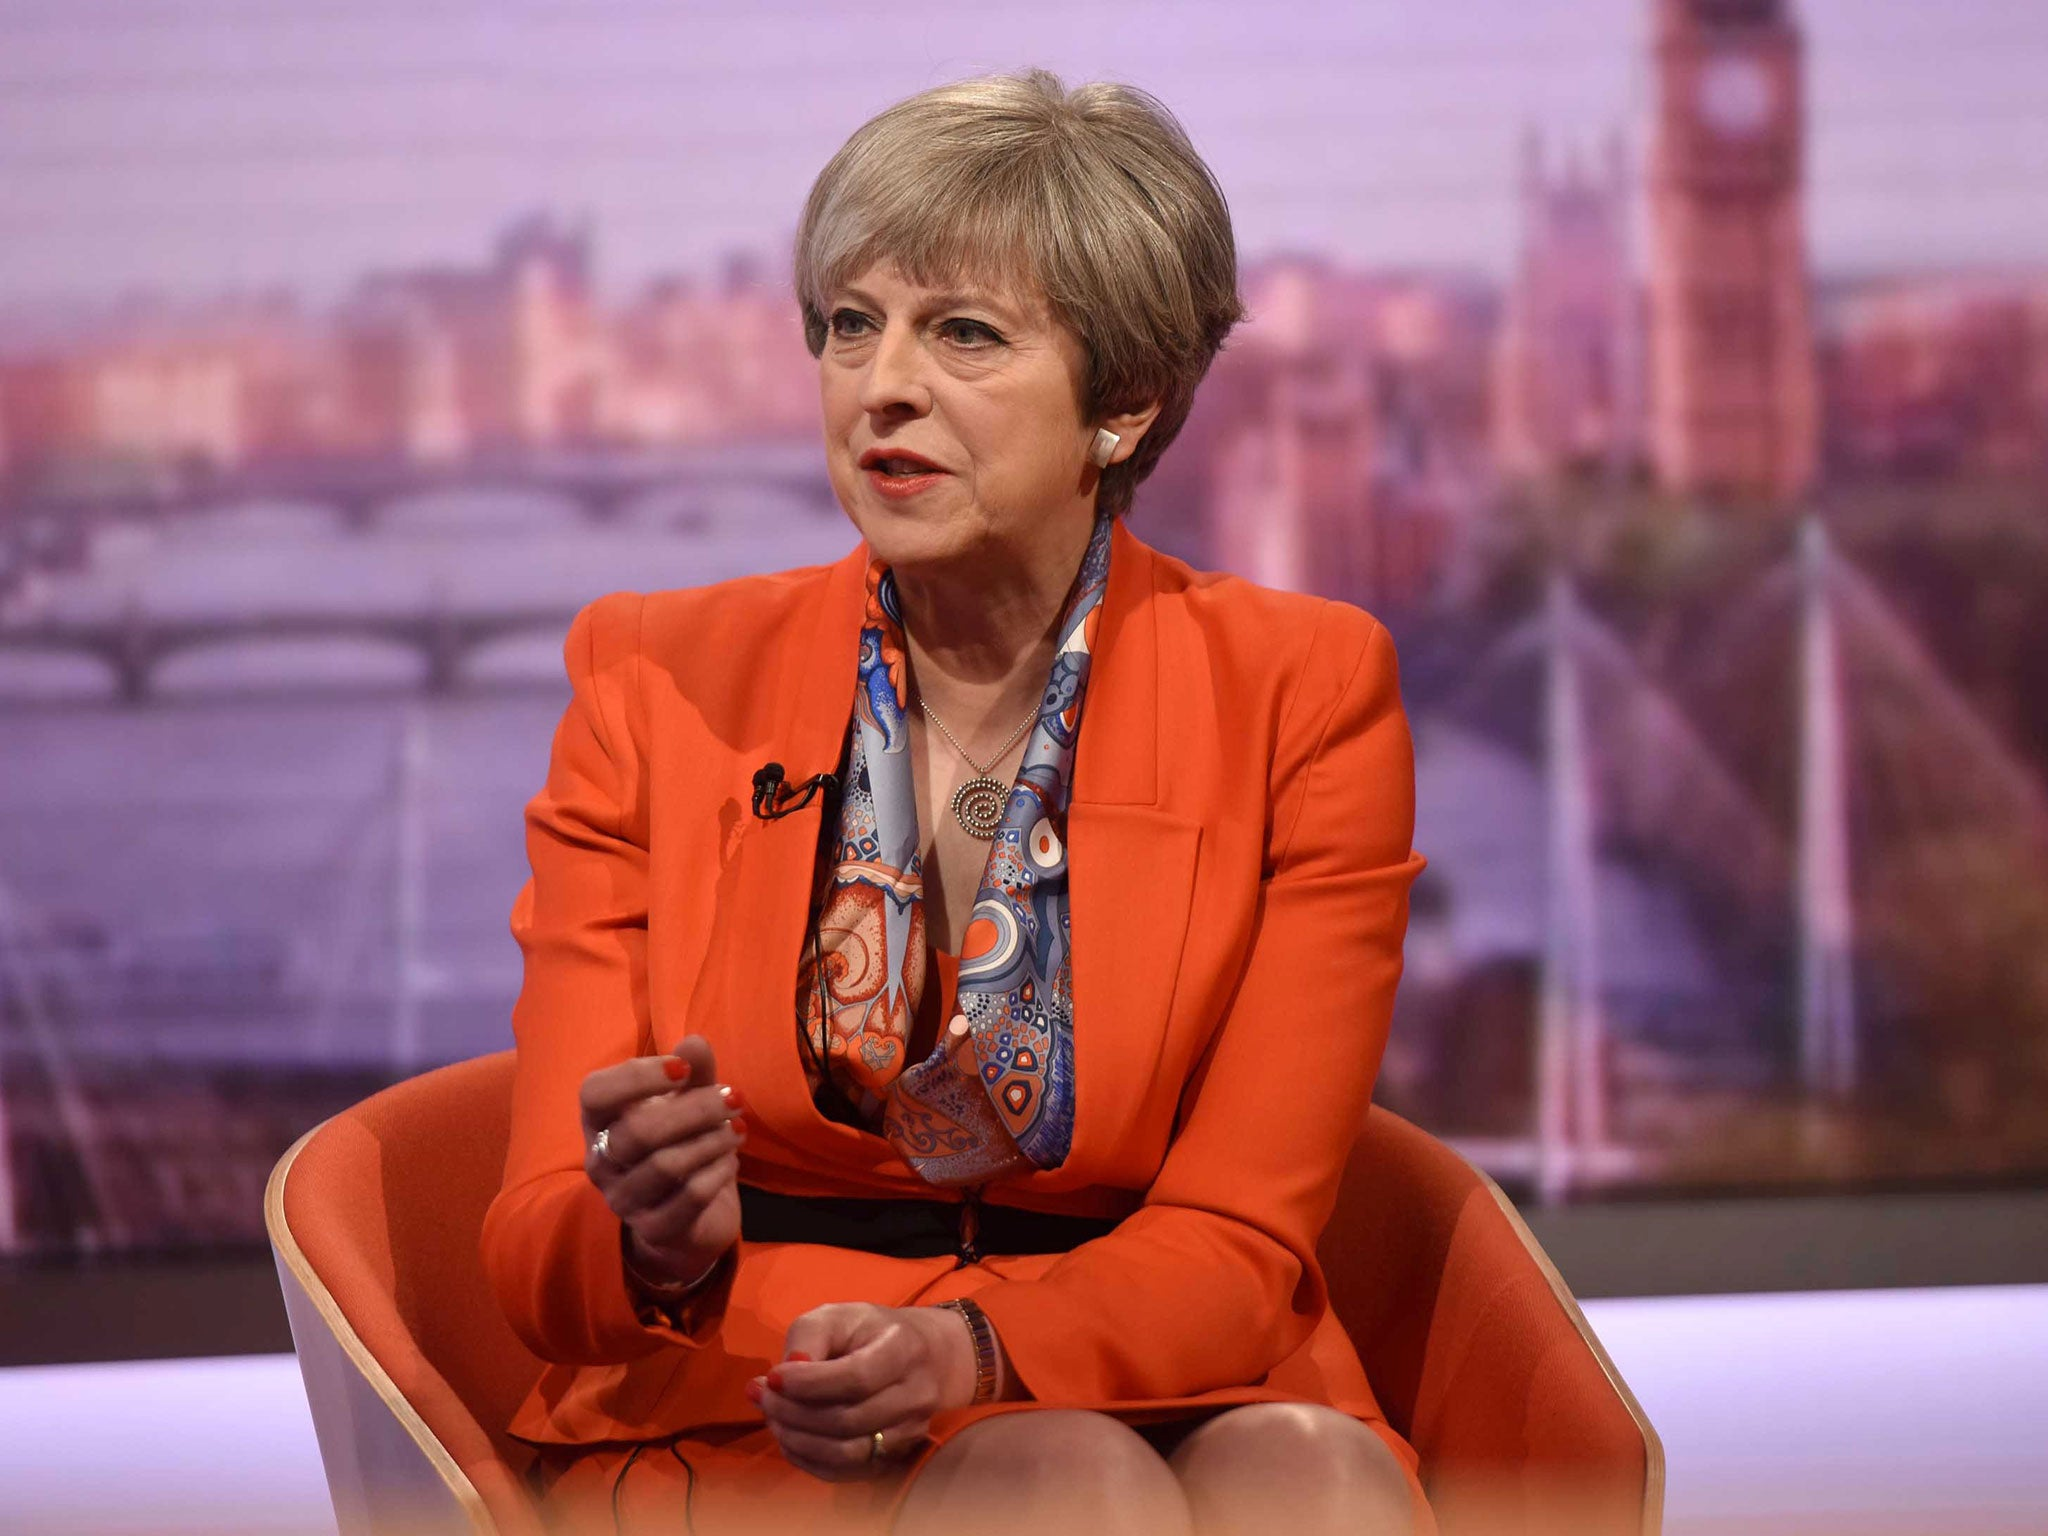 Theresa May vows not to raise VAT but won't rule out other income tax increases